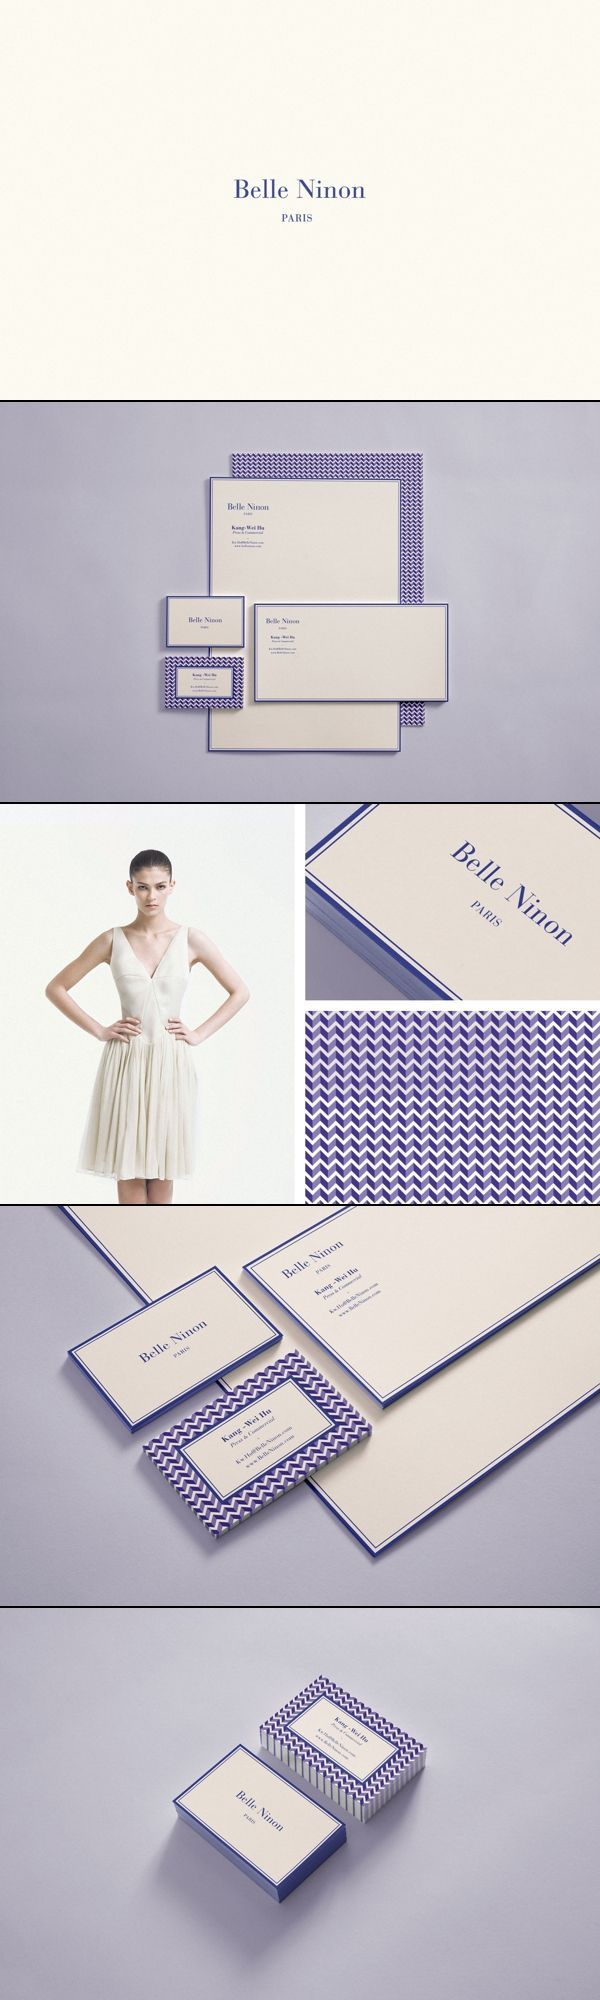 Belle Ninon | Château Bâtard | #stationary #corporate #design #corporatedesign #identity #branding #marketing < repinned by www.BlickeDeeler.de | Take a look at www.LogoGestaltung-Hamburg.de